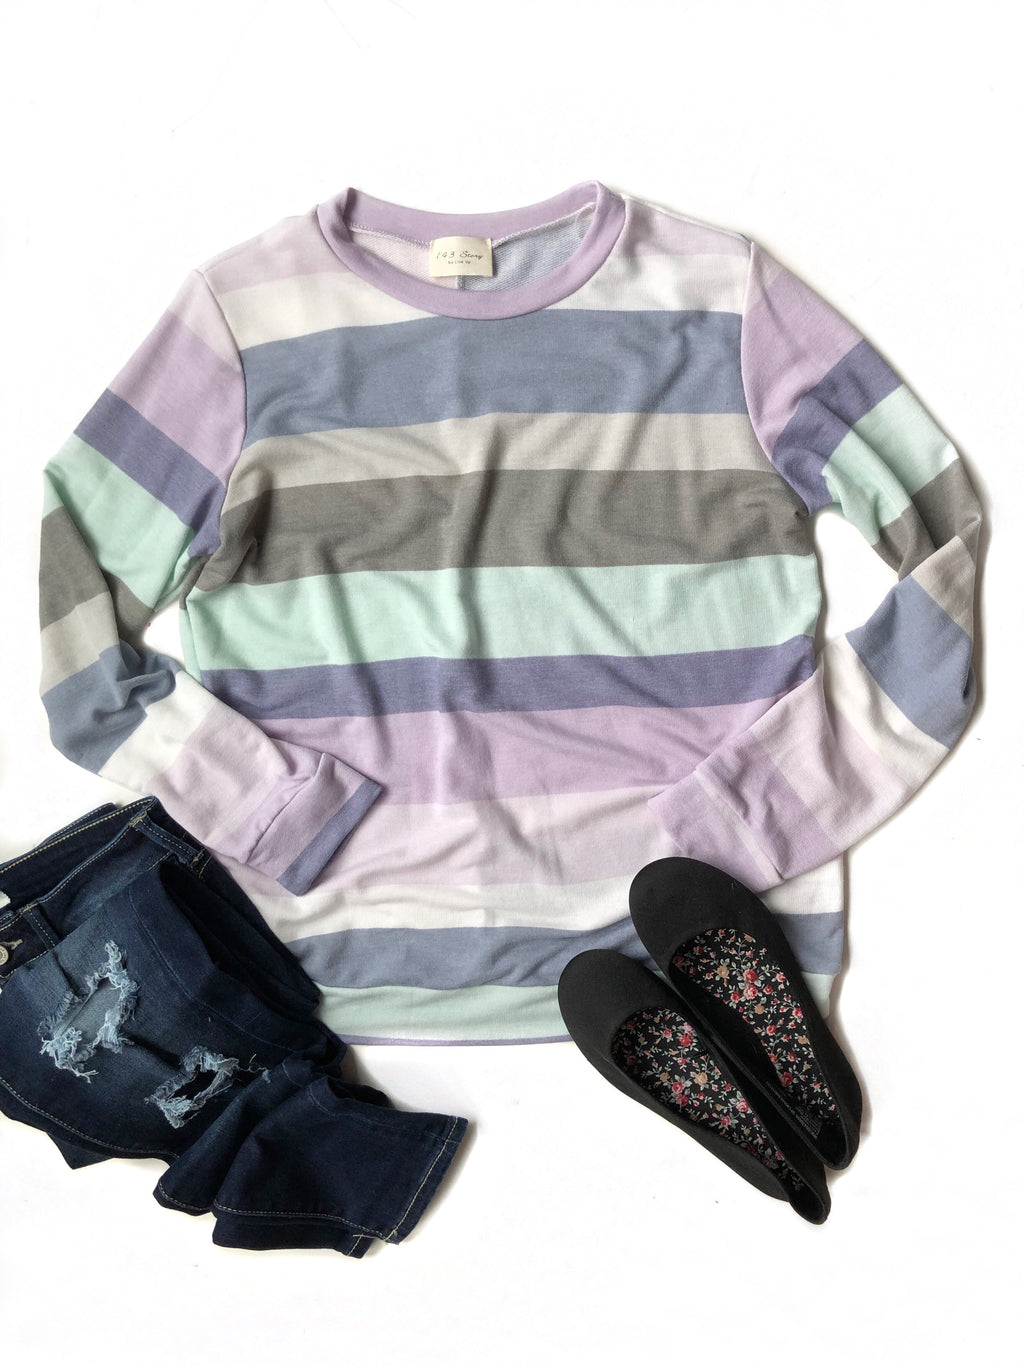 Much Needed Striped Top in Lavender, Blue, Mint and Gray